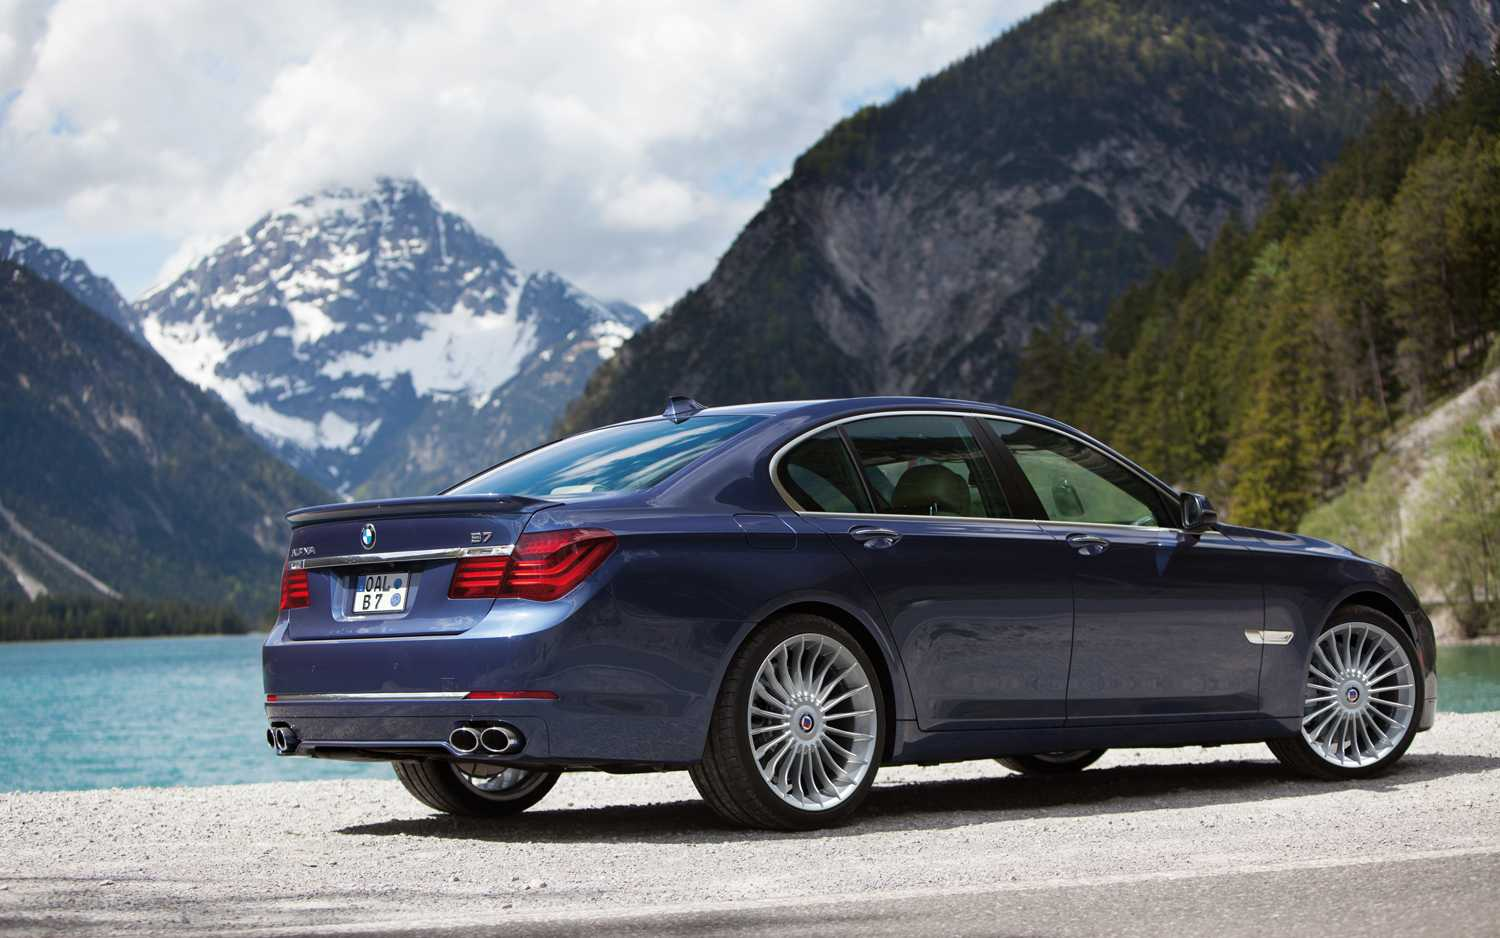 BMW Alpina B Xdrive Is Out Sports A HP Engine - Bmw b7 alpina horsepower